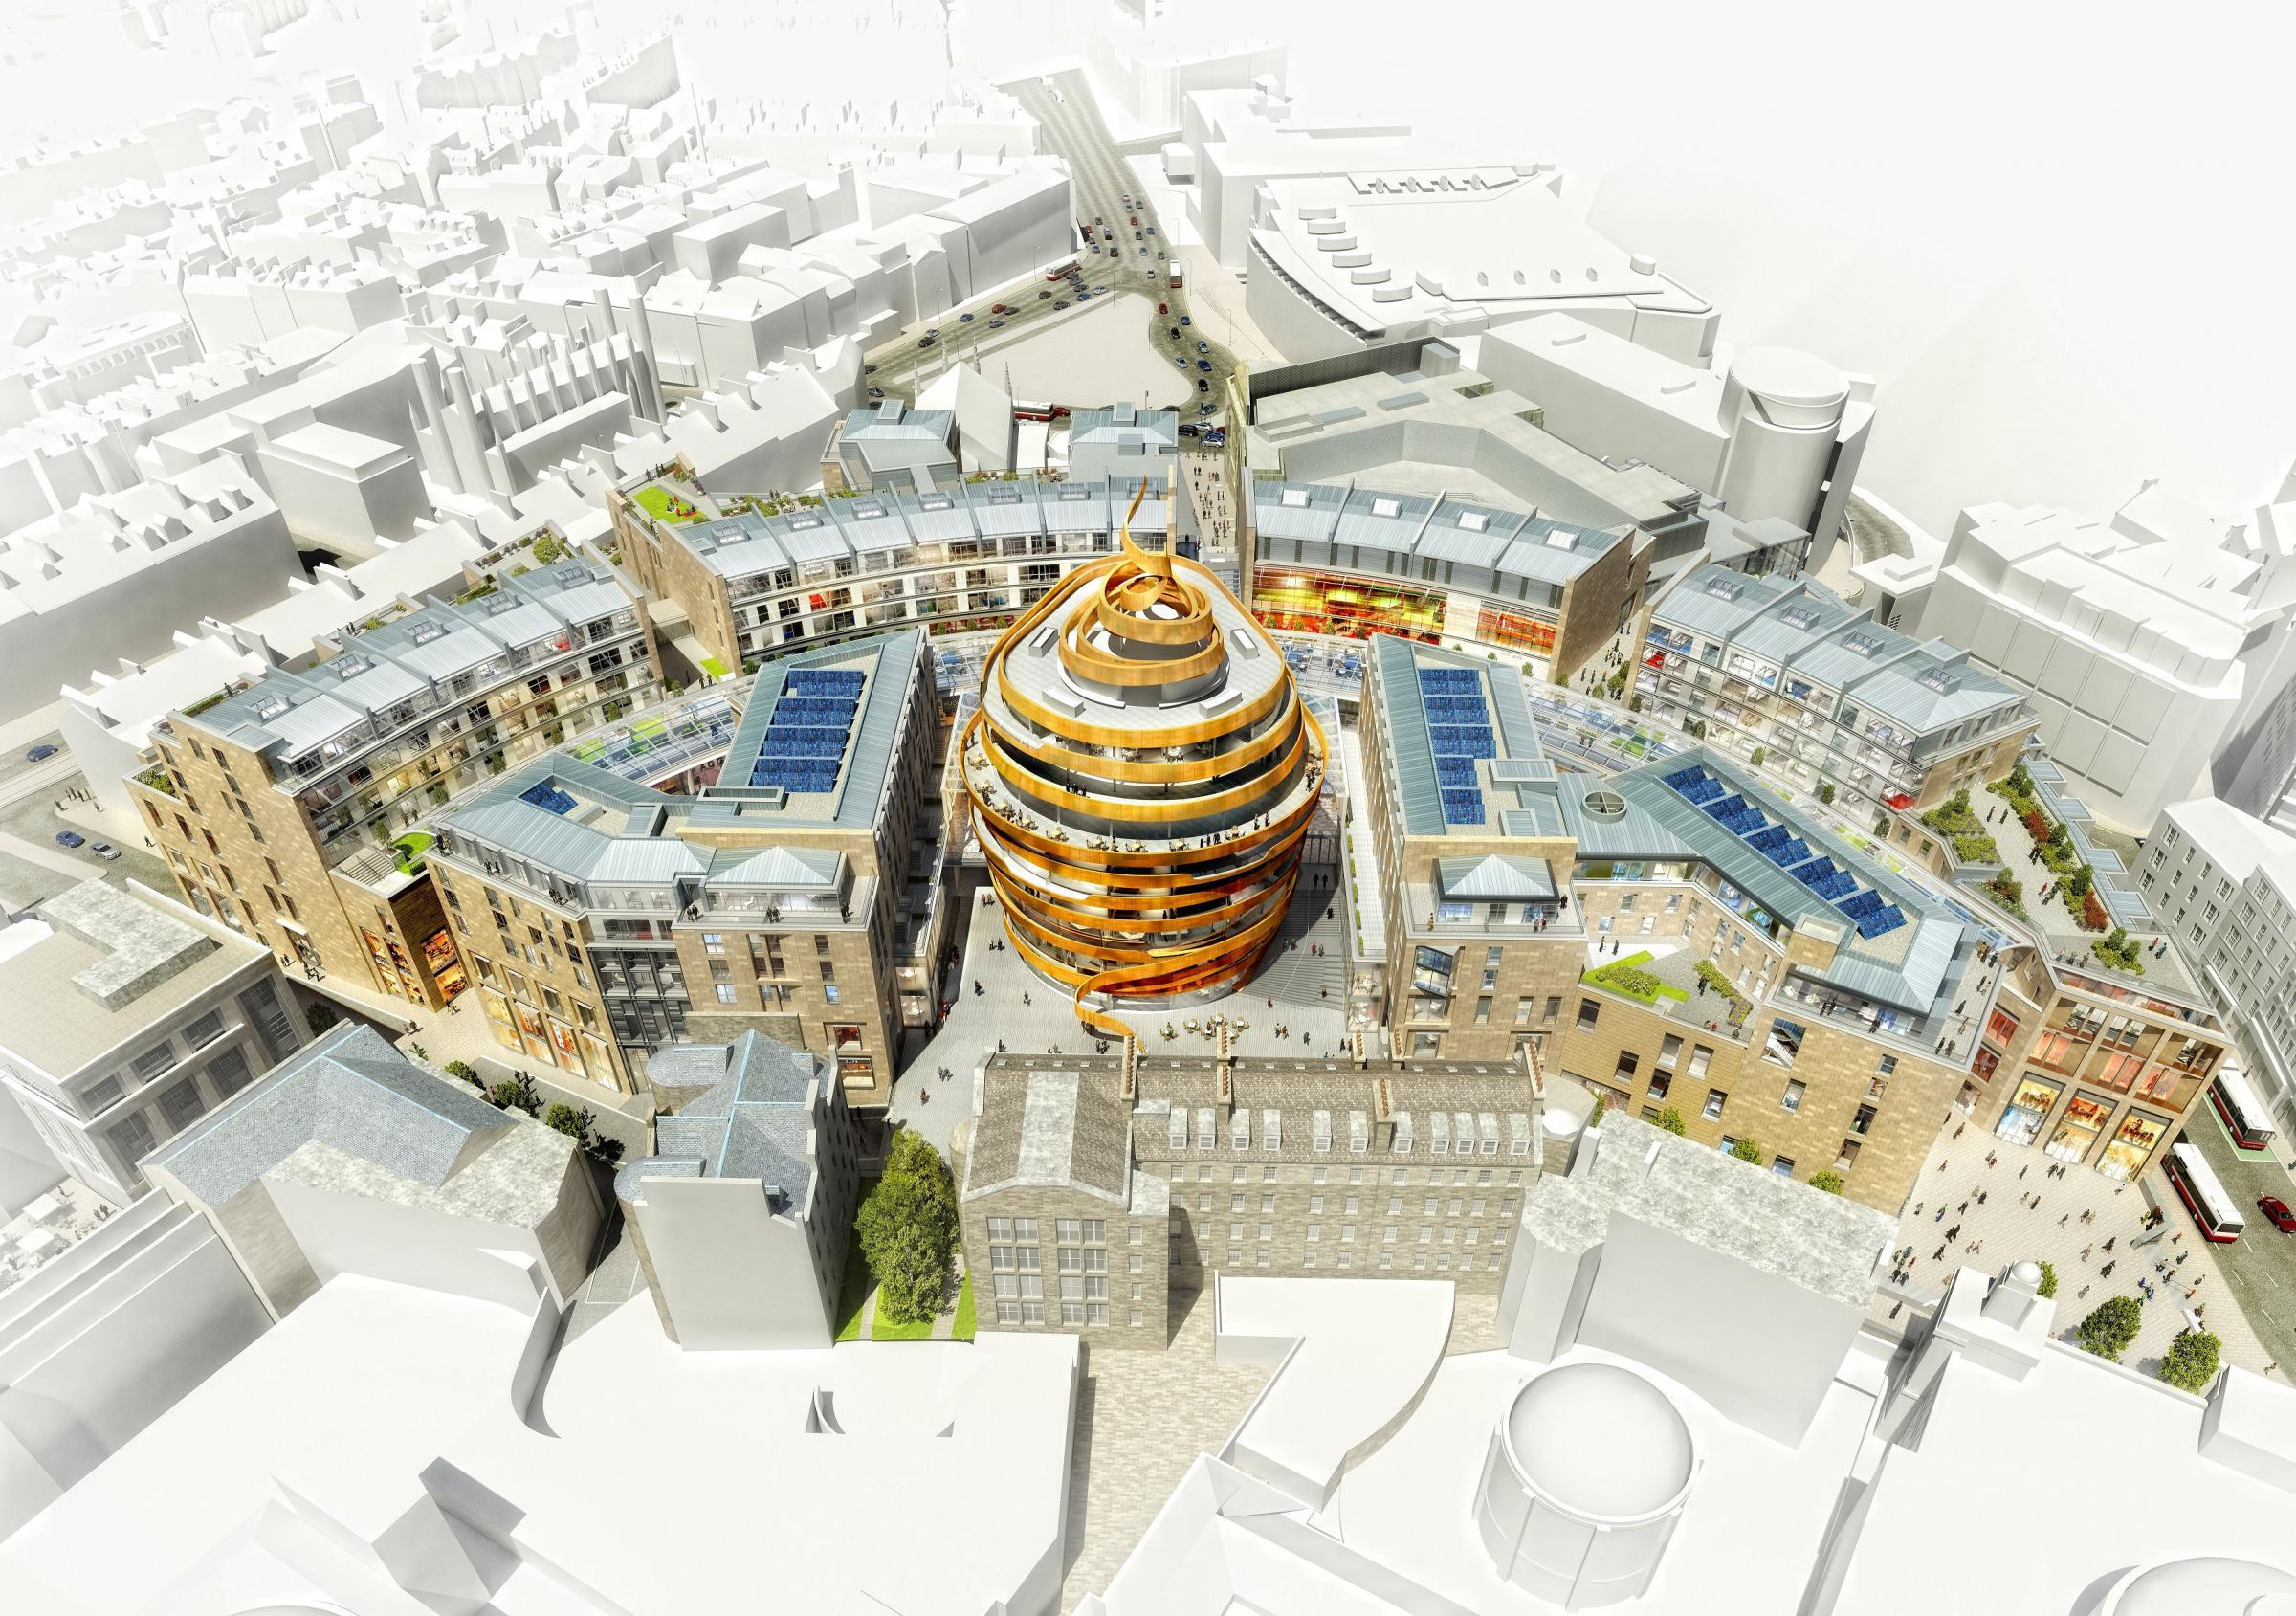 The new St James Centre in Edinburgh, currently under construction, is a prime example of a regeneration development funded in part by international capital